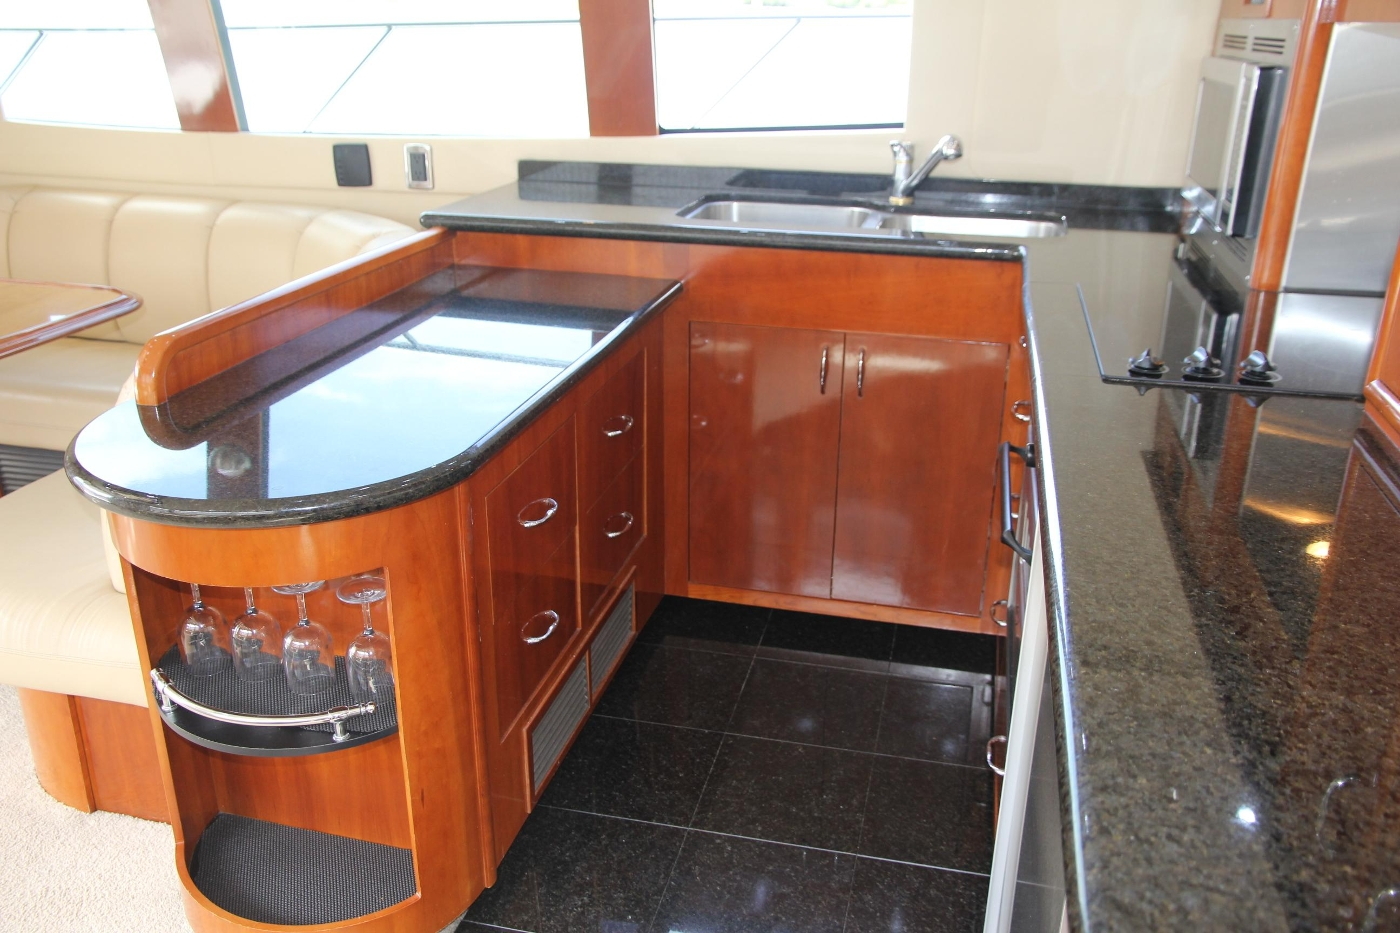 2005 Carver 560 Voyager Pilothouse, U-Shaped Galley